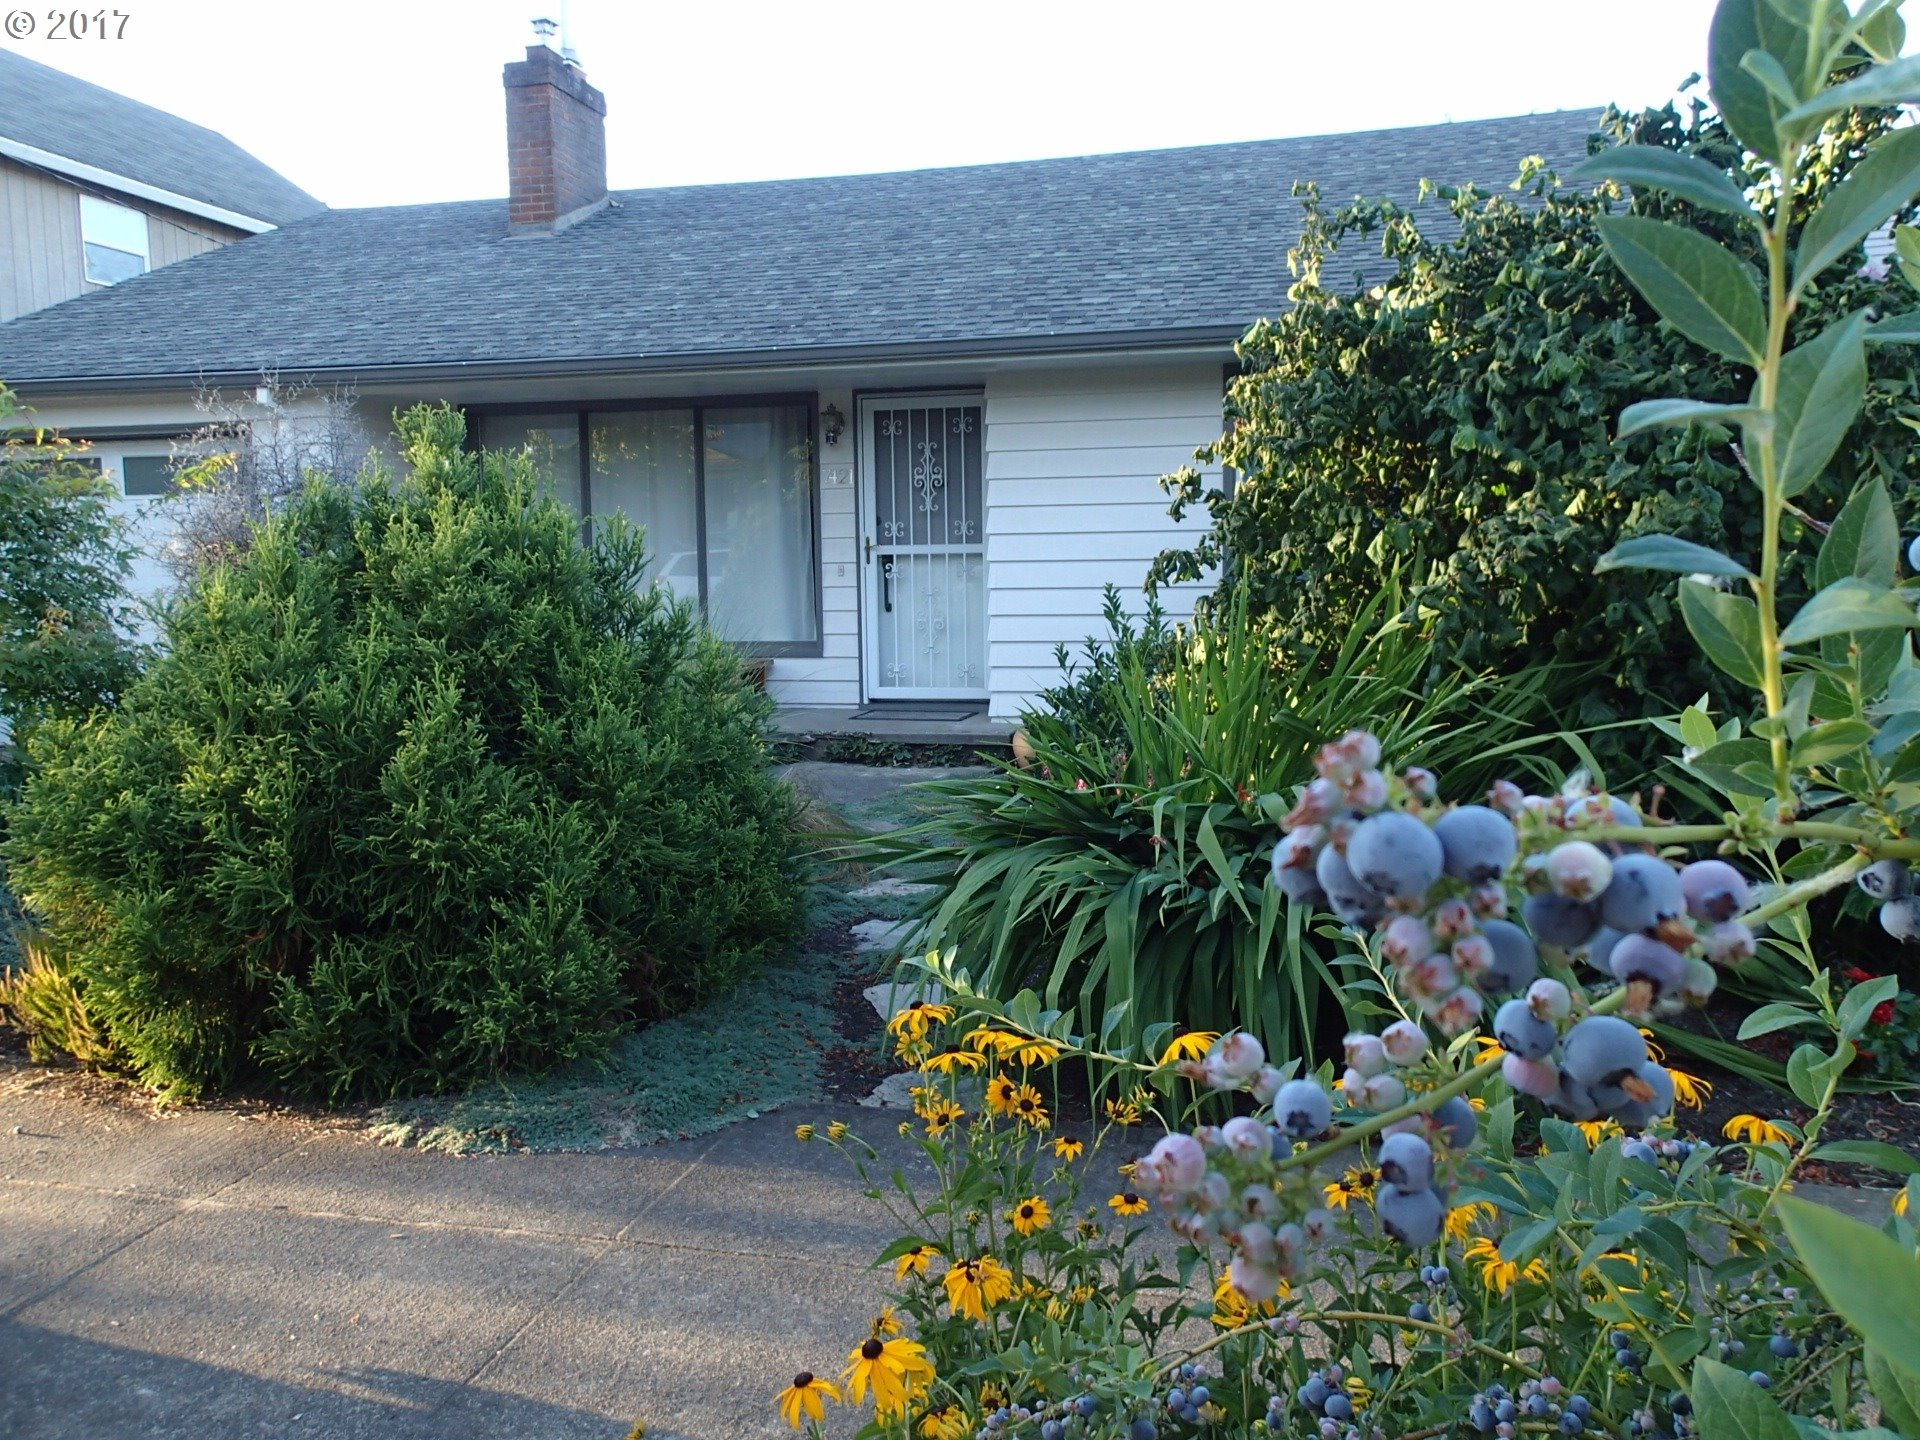 Classic mid-century modern in St. Johns. 2 bedrooms, 1 bath on main level, large bonus room and guest bath in basement. Updated plumbing and electrical. Oak hardwood floors, coved ceilings, wood burning insert in livingroom. Gas heat, central AC, stainless gas range, appliances included. Attached single car garage. Landscaped garden, fenced backyard, garden shed, greenhouse. 15 minutes to downtown Portland, over the St. Johns bridge.